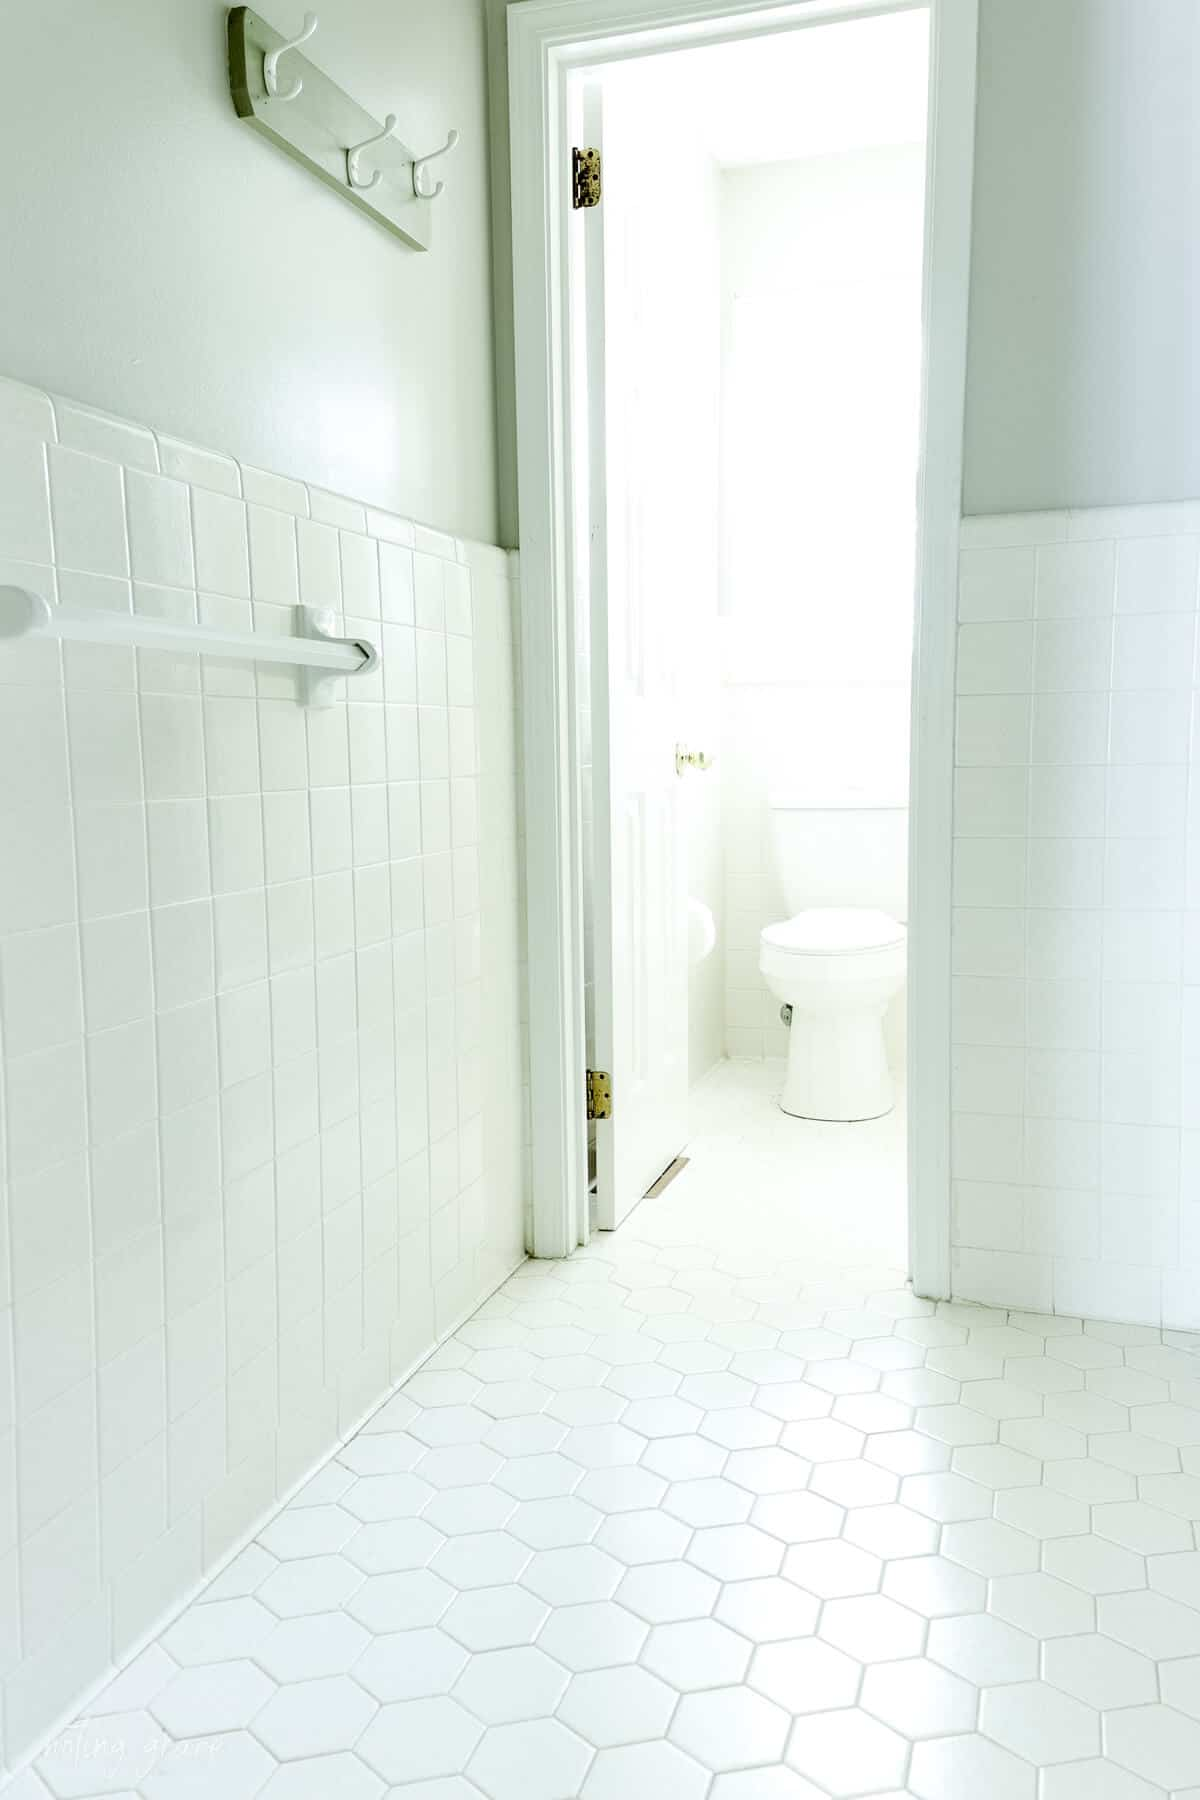 80s style bathroom with white speckled tiled walls and hexagon tiled floor.